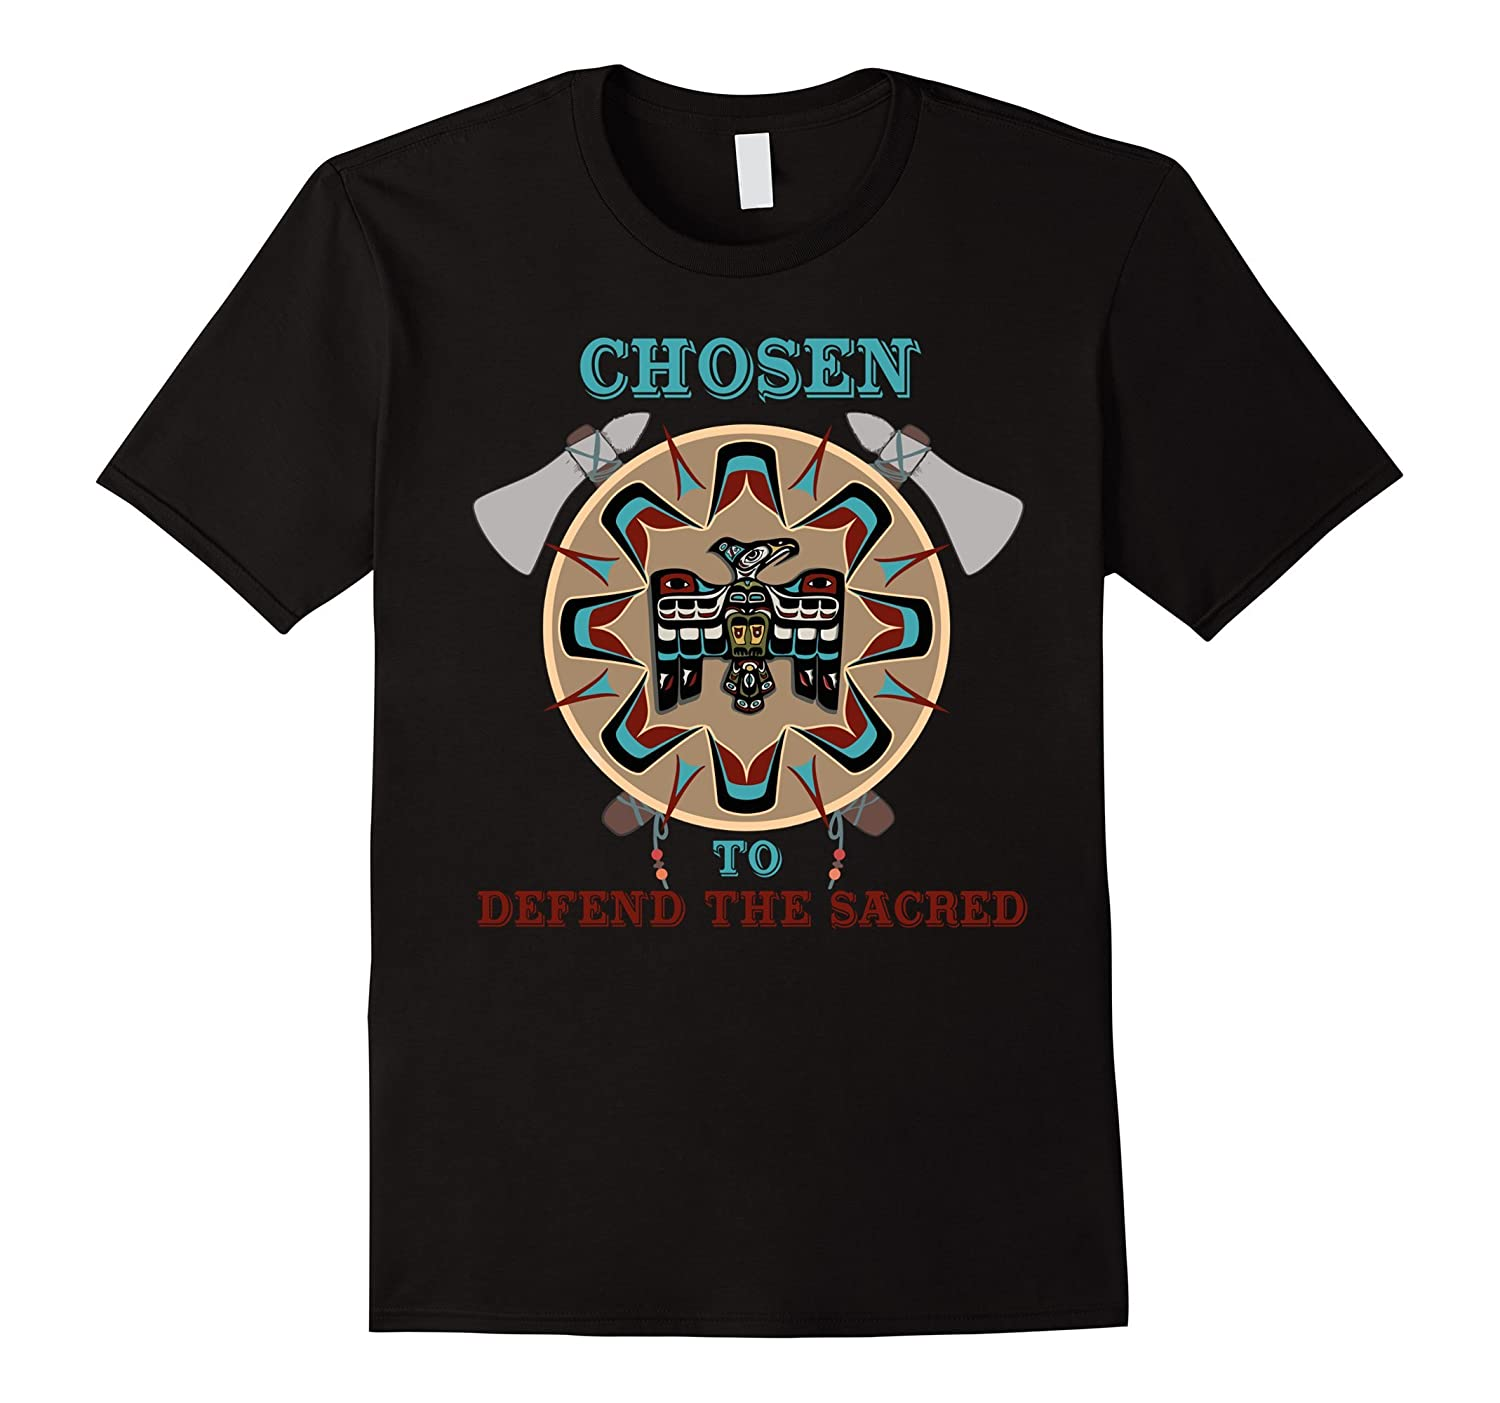 Chosen to Stand With Standing Rock Nodapl Pipeline t shirt-CD